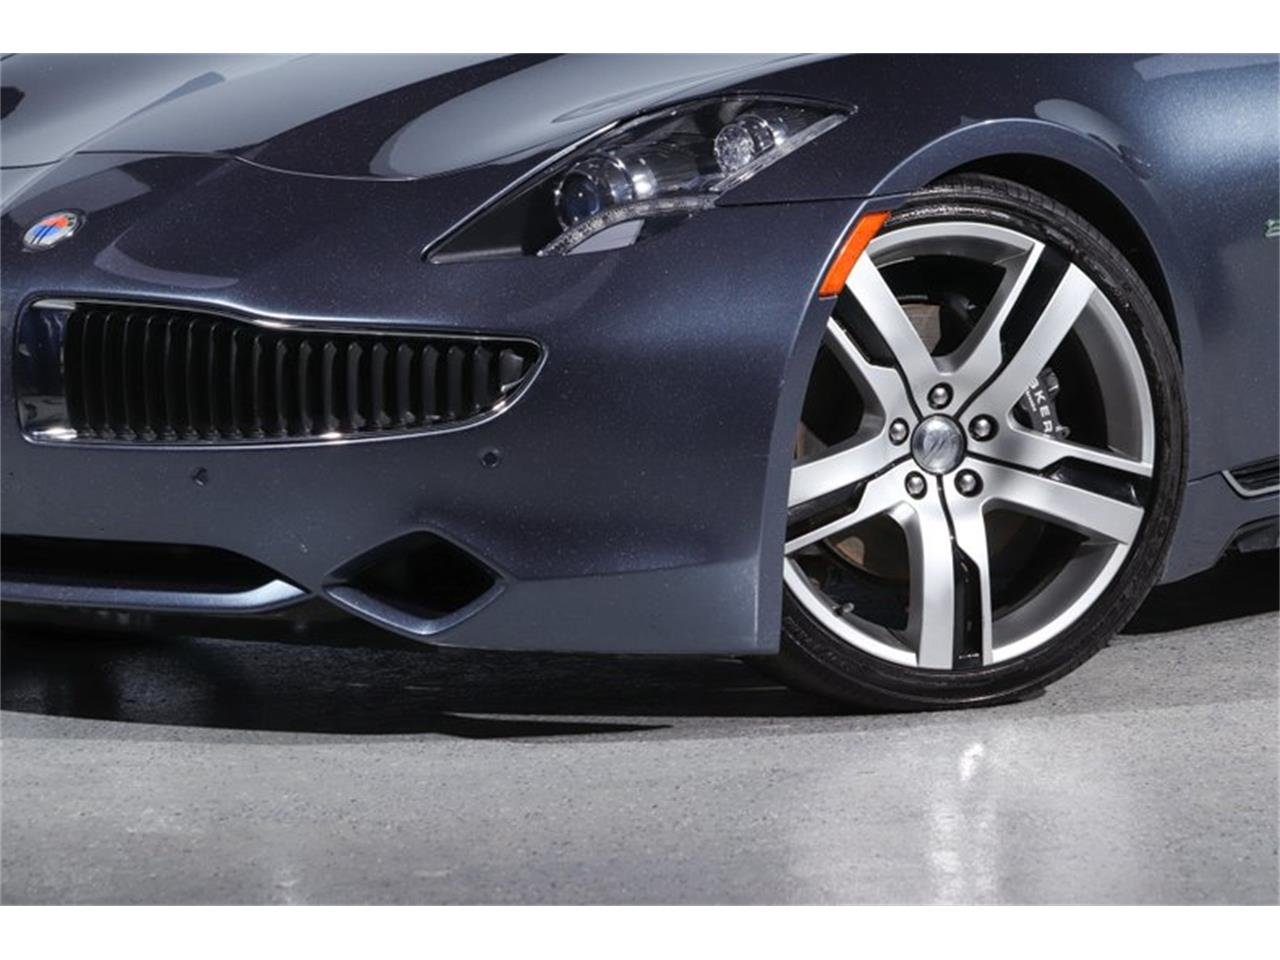 2012 Fisker Karma for sale in New Hyde Park, NY – photo 15